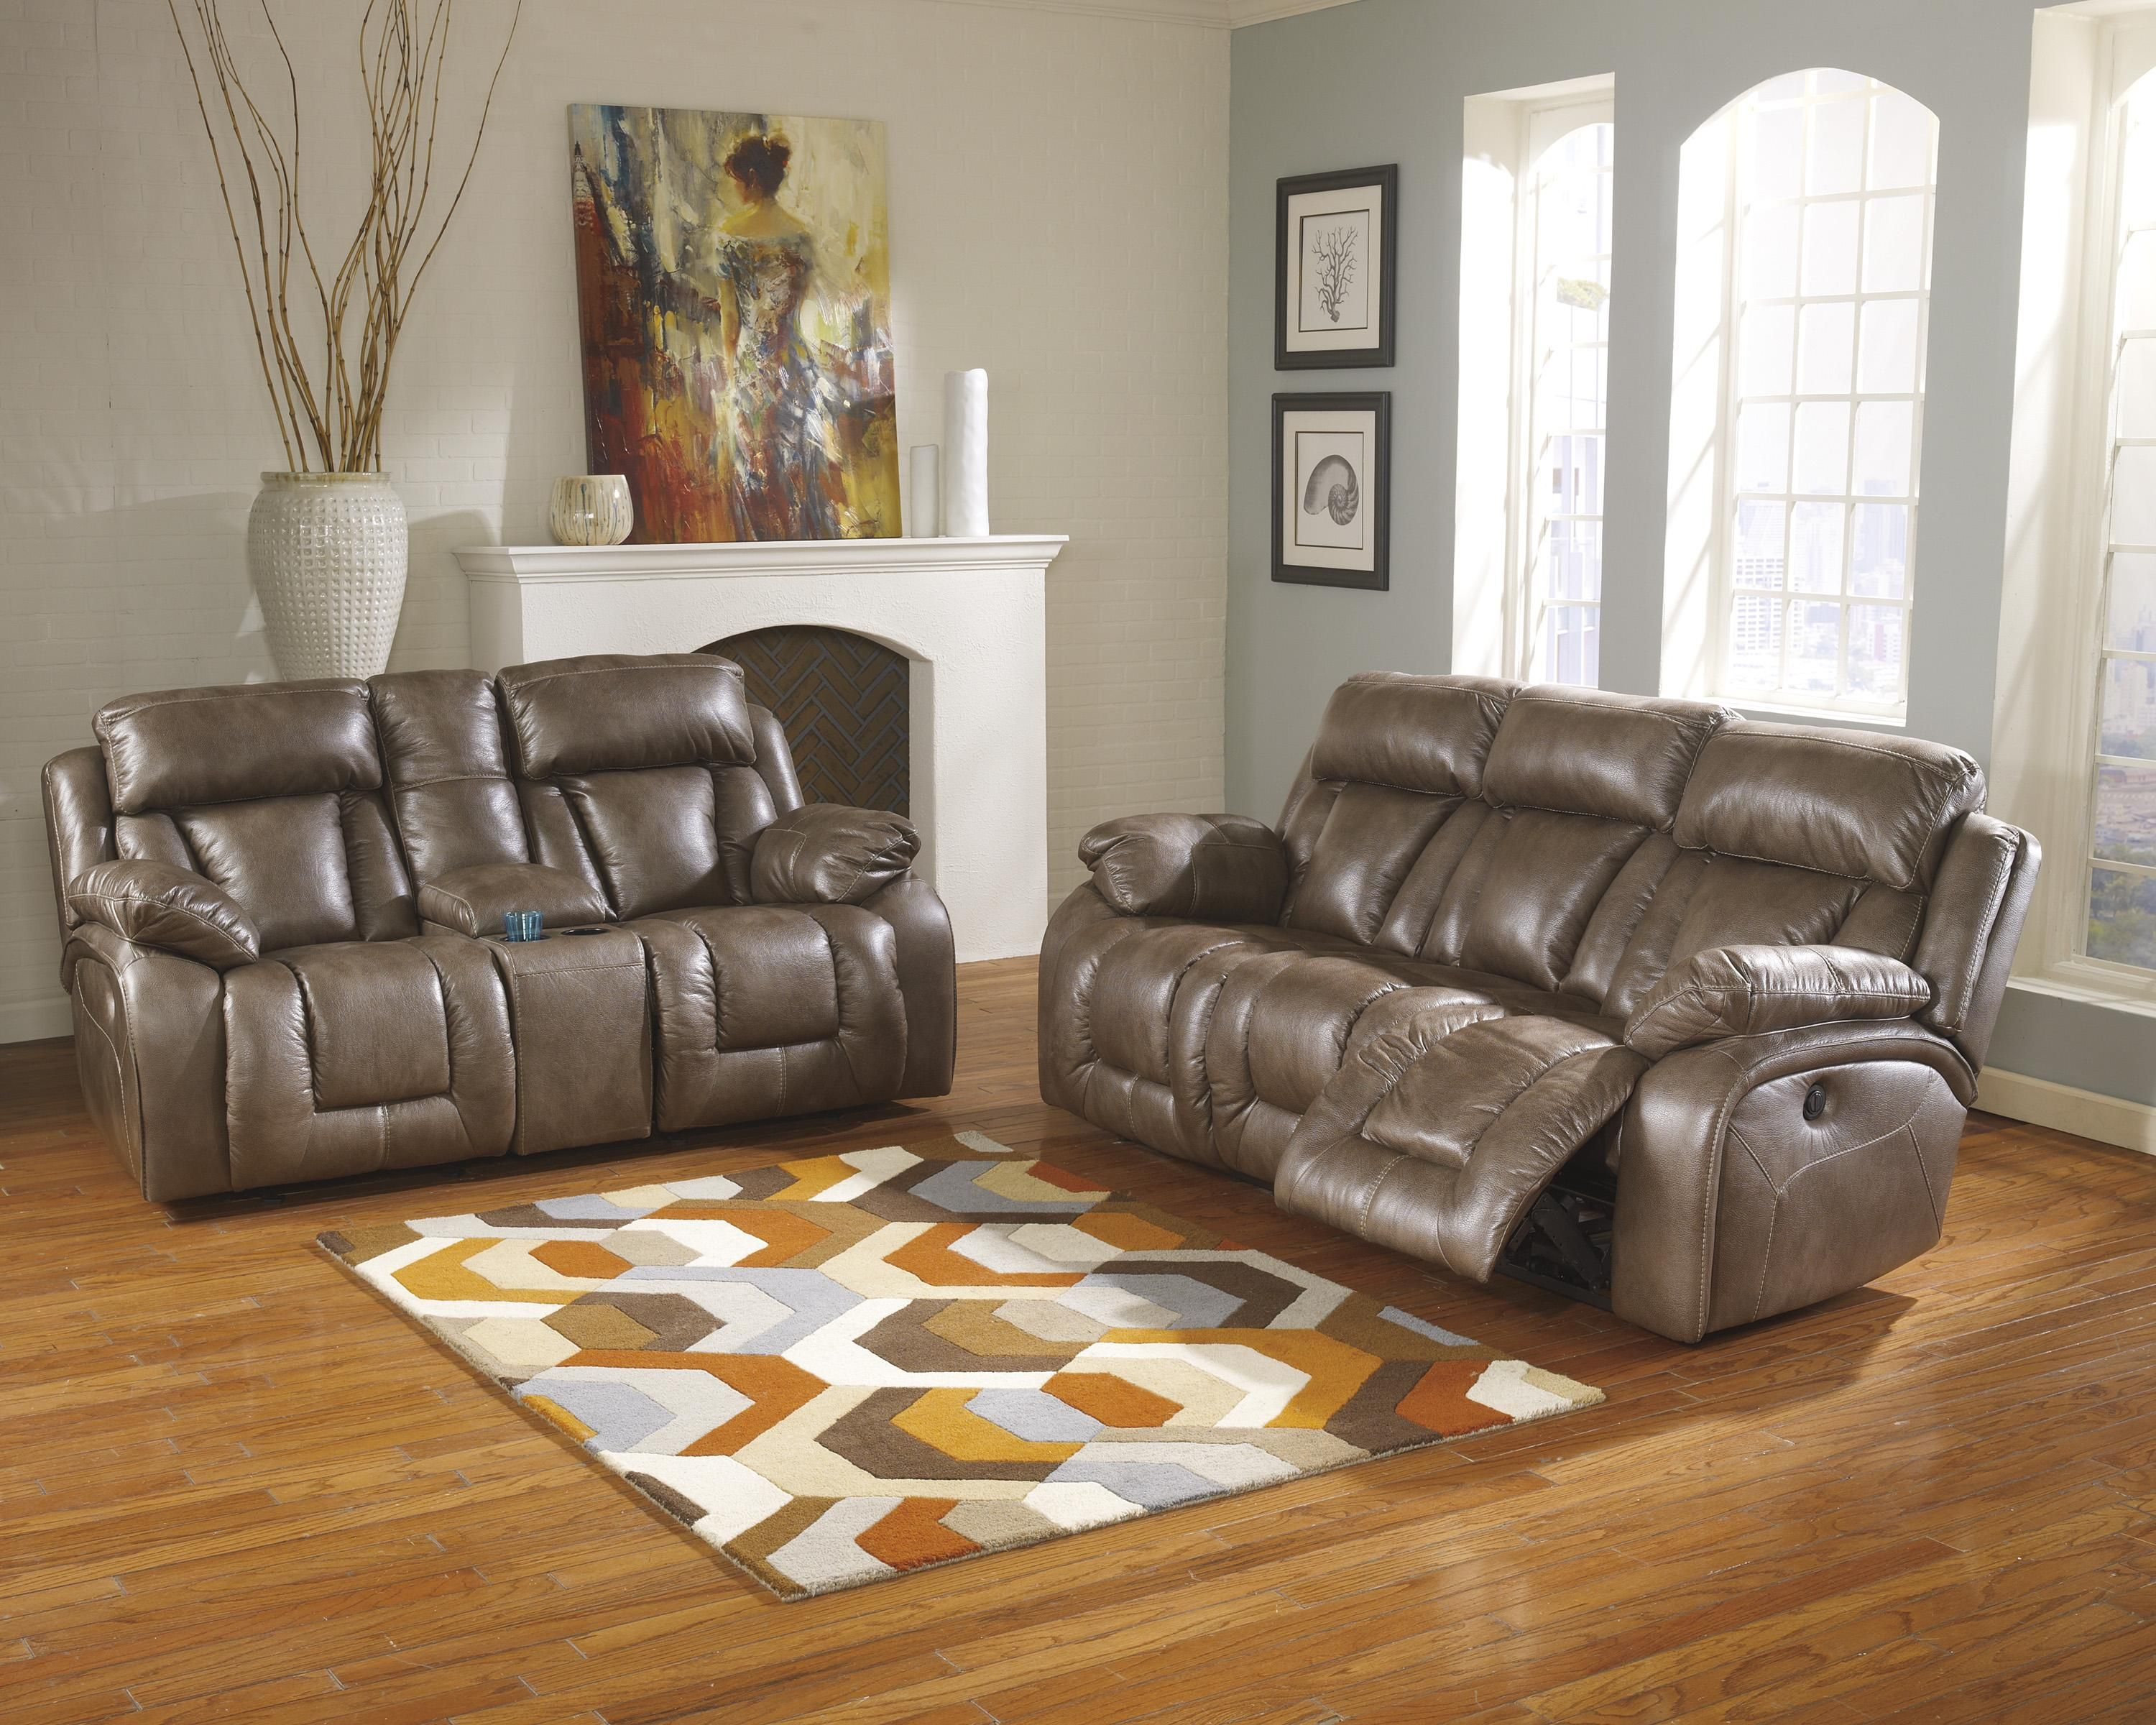 Loral Sable Reclining Living Room Group By Ashley Furniture